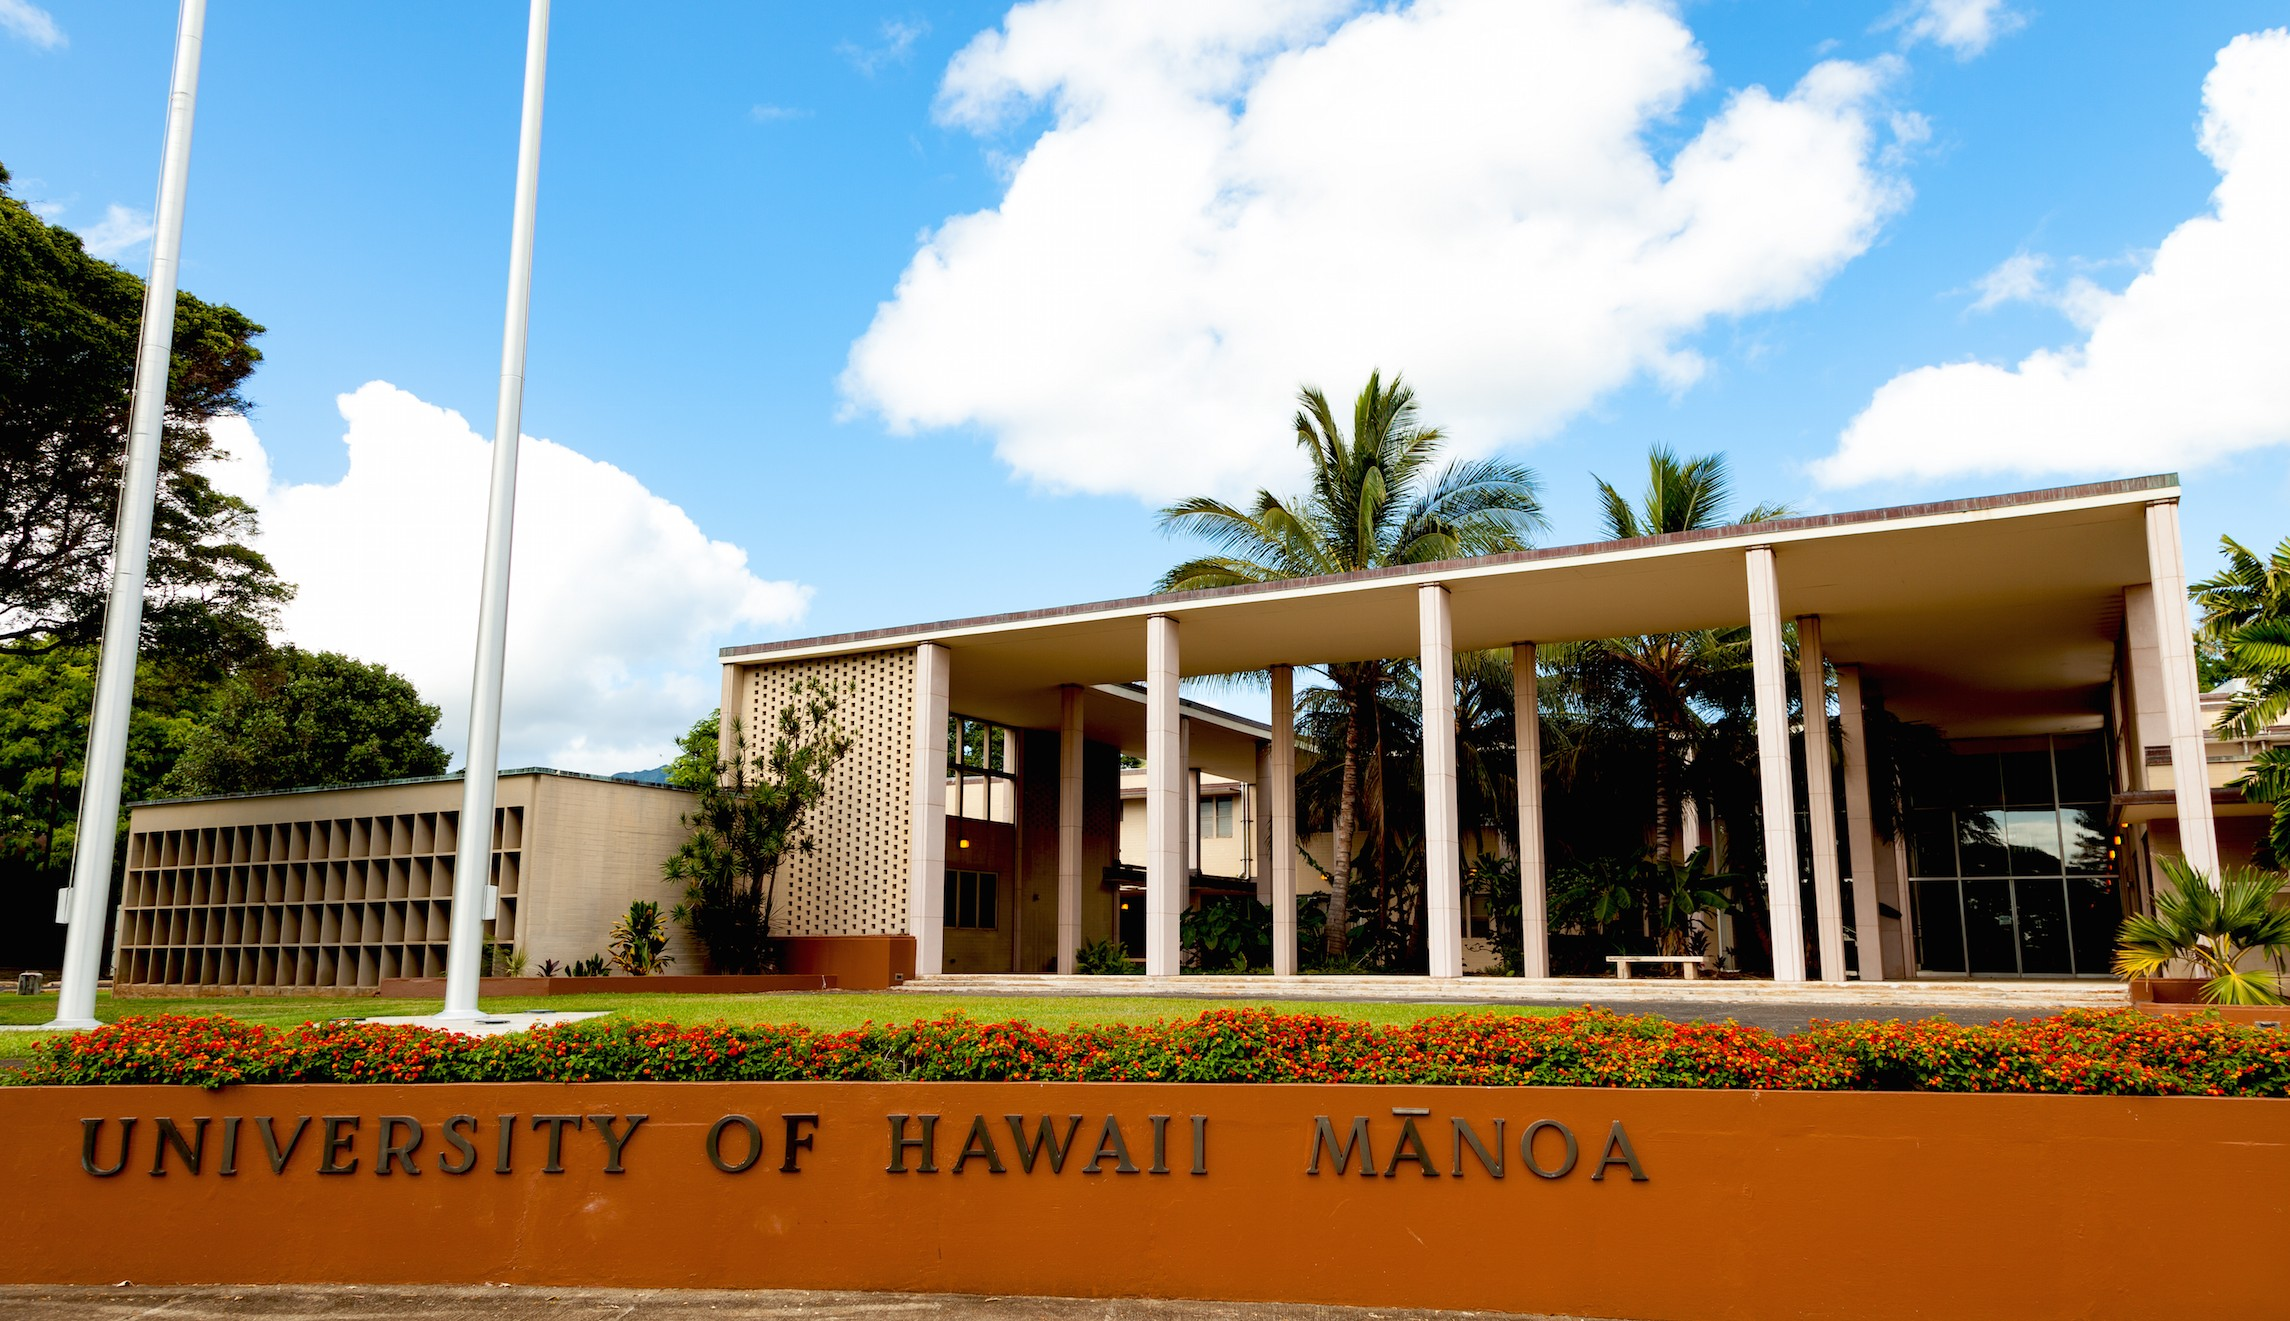 A building on the University of Hawaii-Manoa campus.